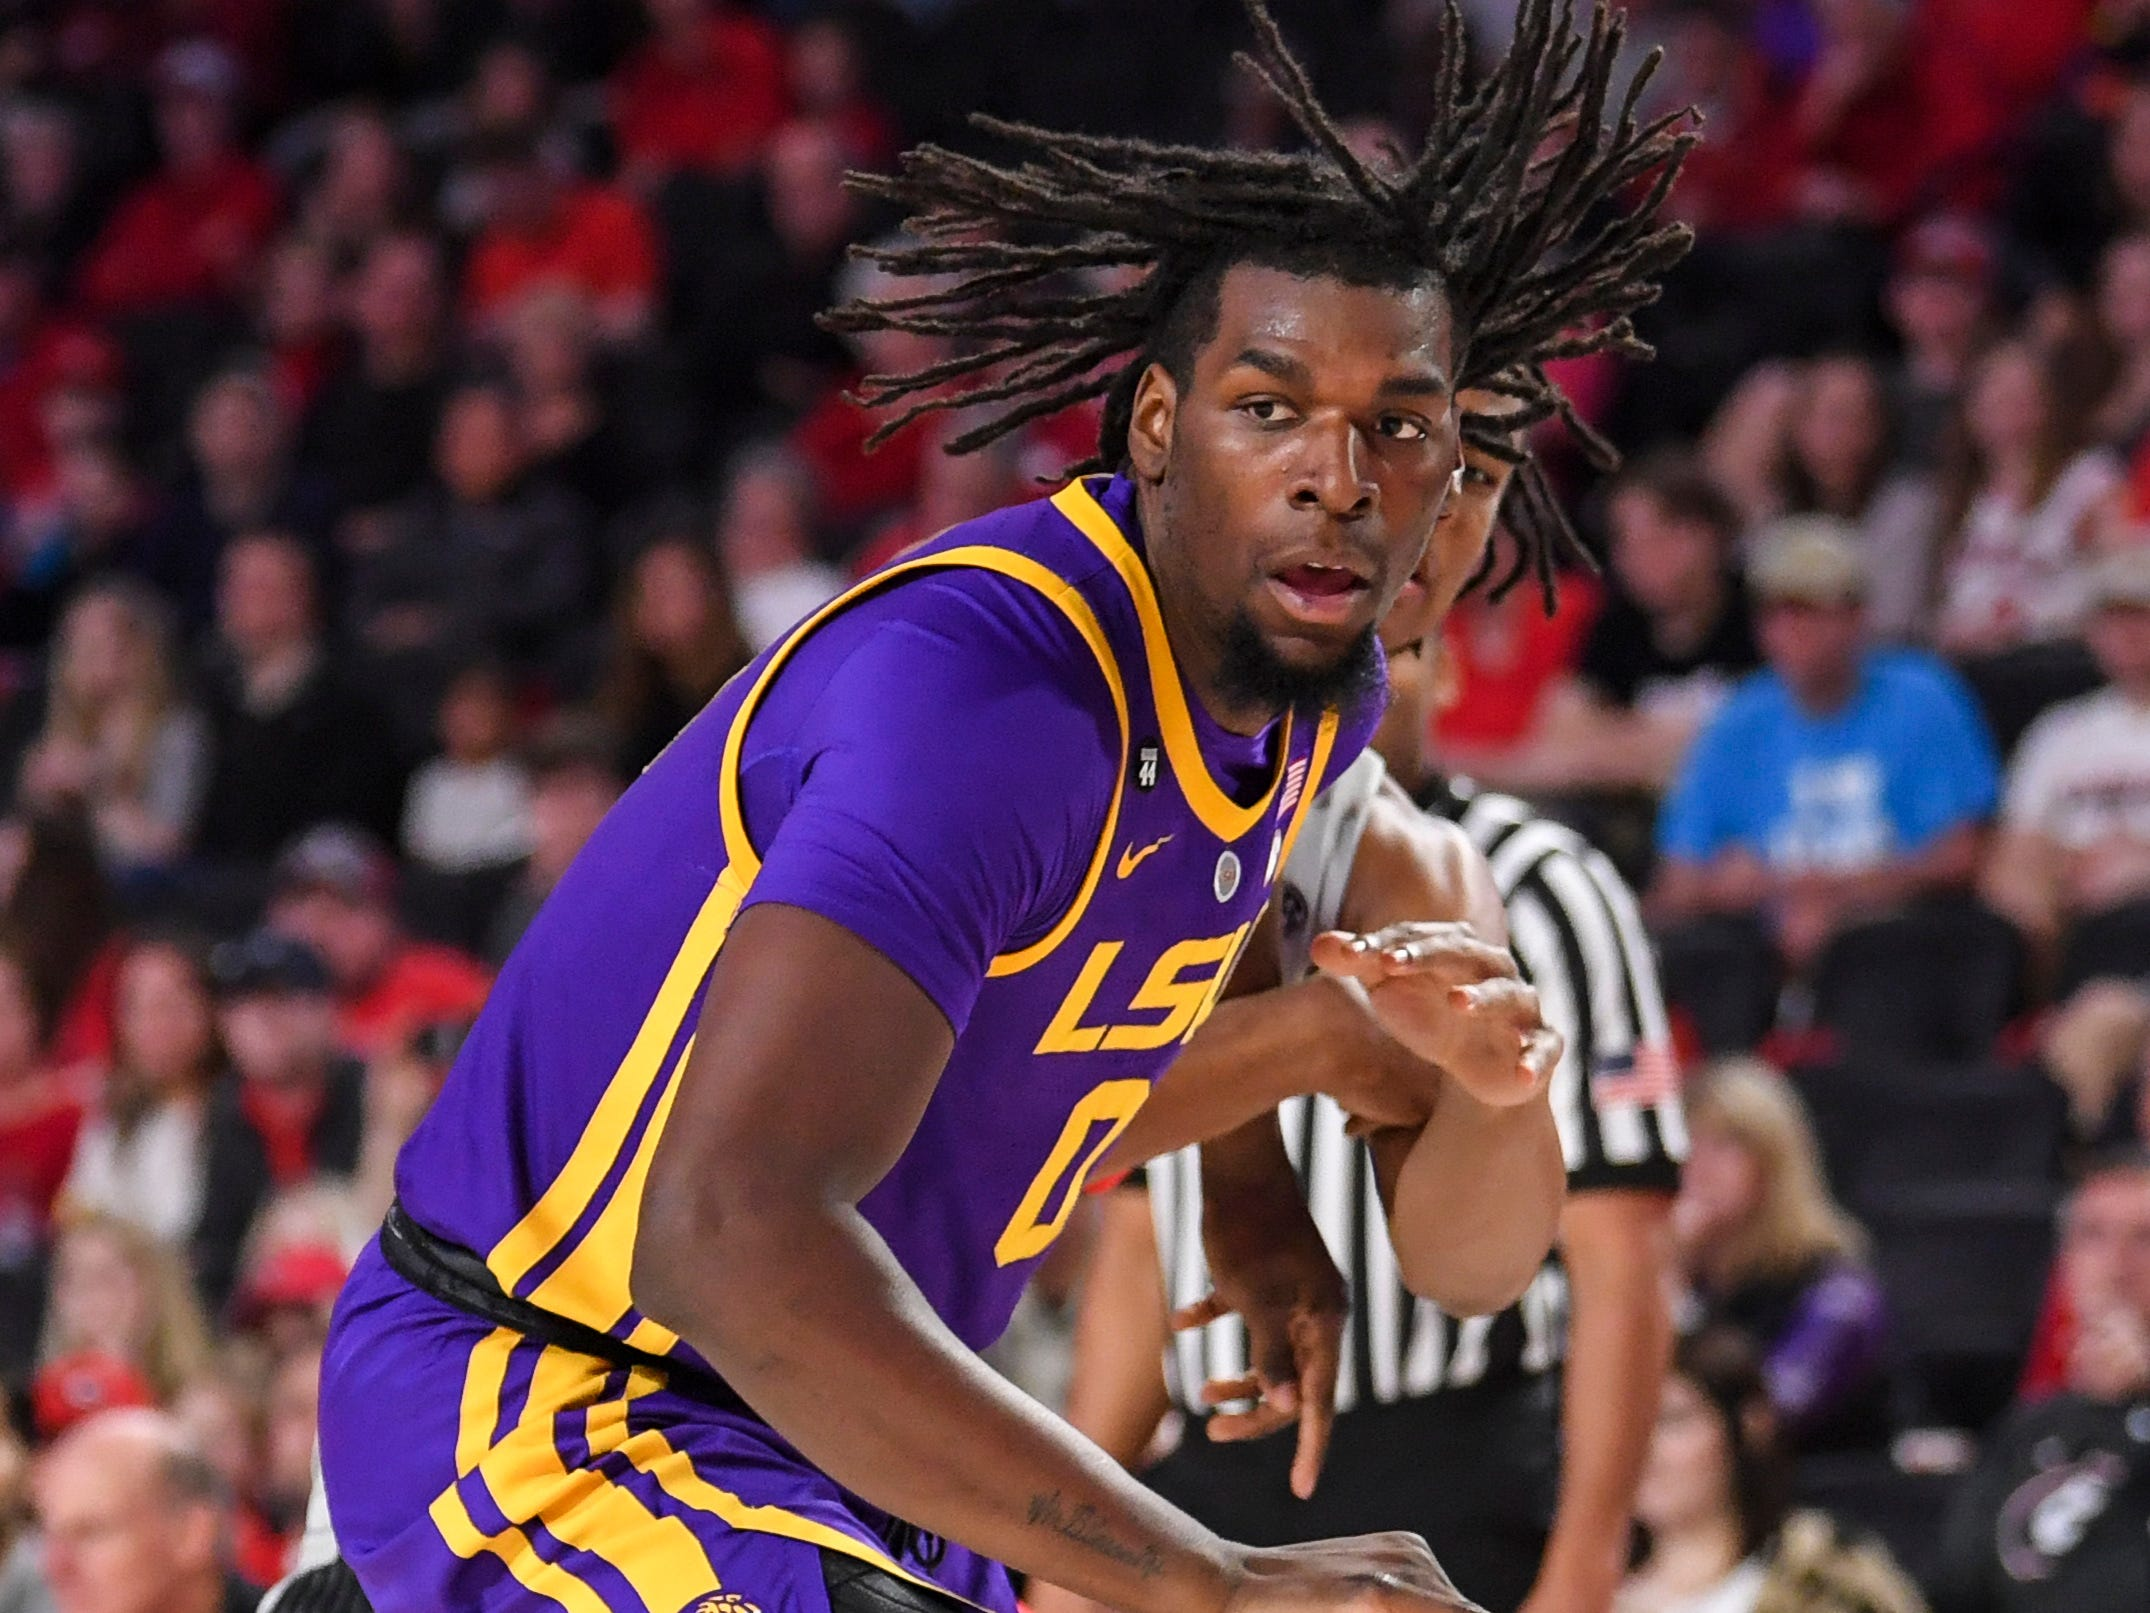 Feb 16, 2019; Athens, GA, USA; LSU Tigers forward Naz Reid (0) controls the ball against the Georgia Bulldogs during the first half at Stegeman Coliseum. Mandatory Credit: Dale Zanine-USA TODAY Sports